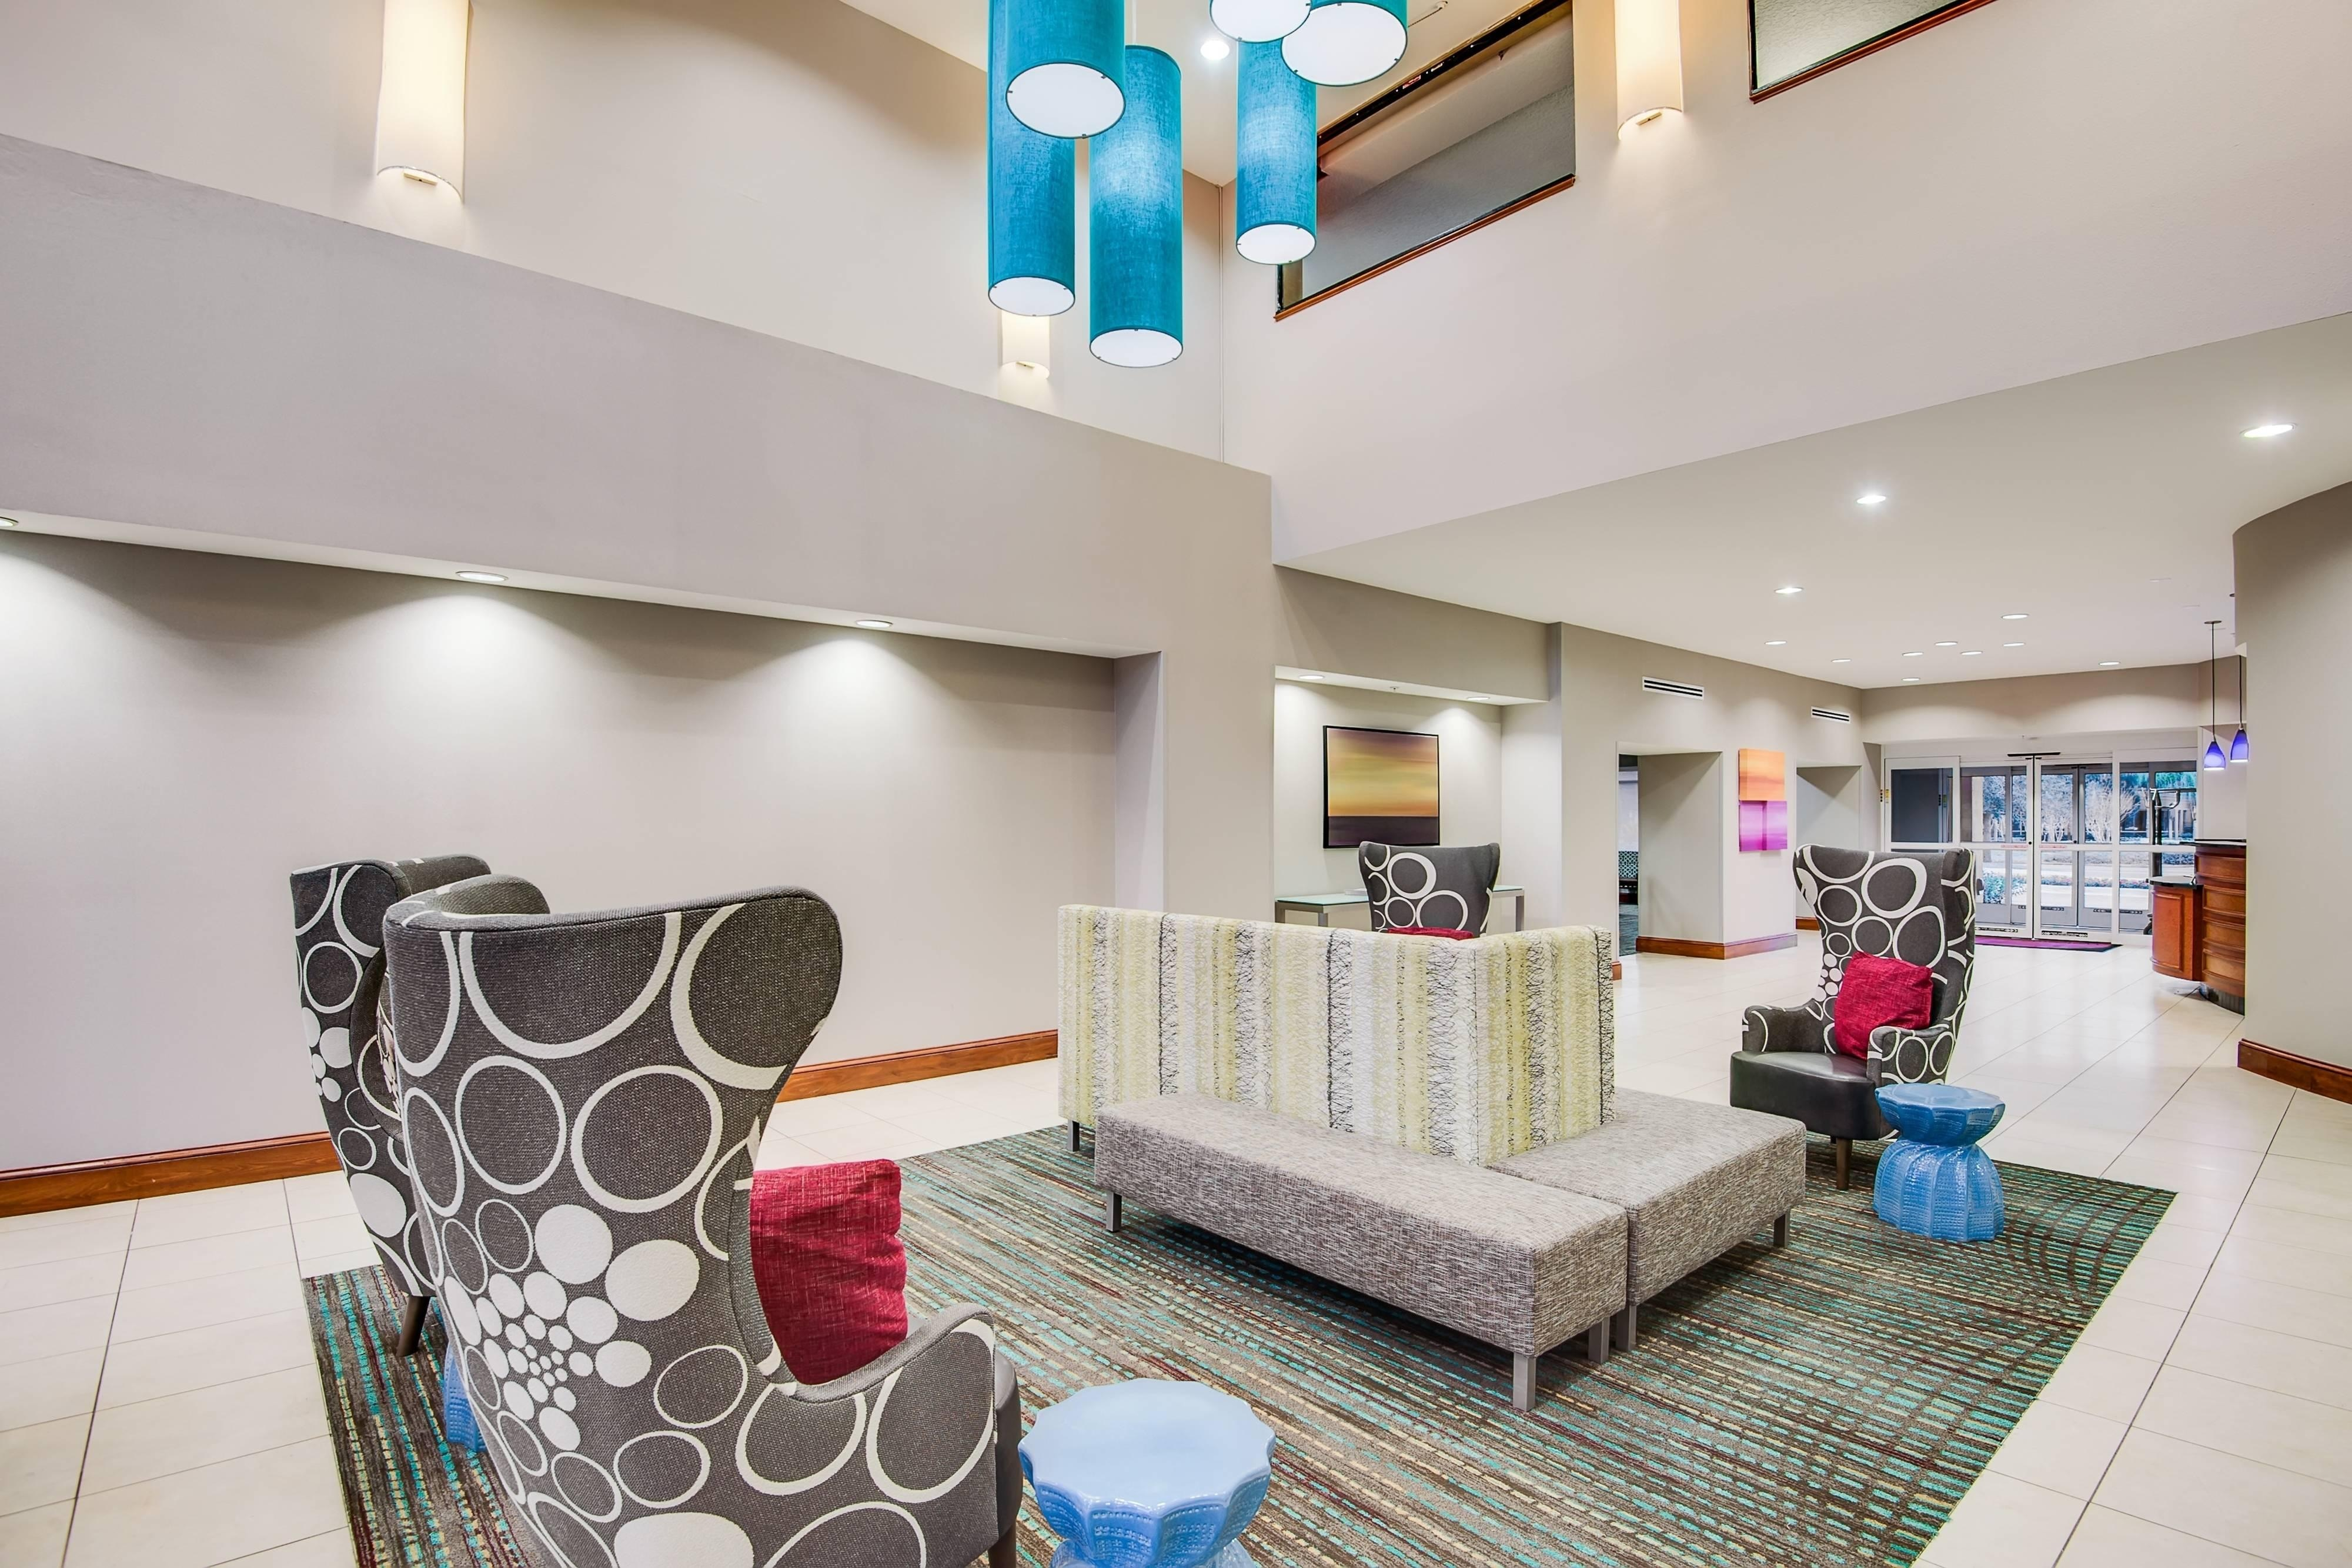 Lobby soft seating areas